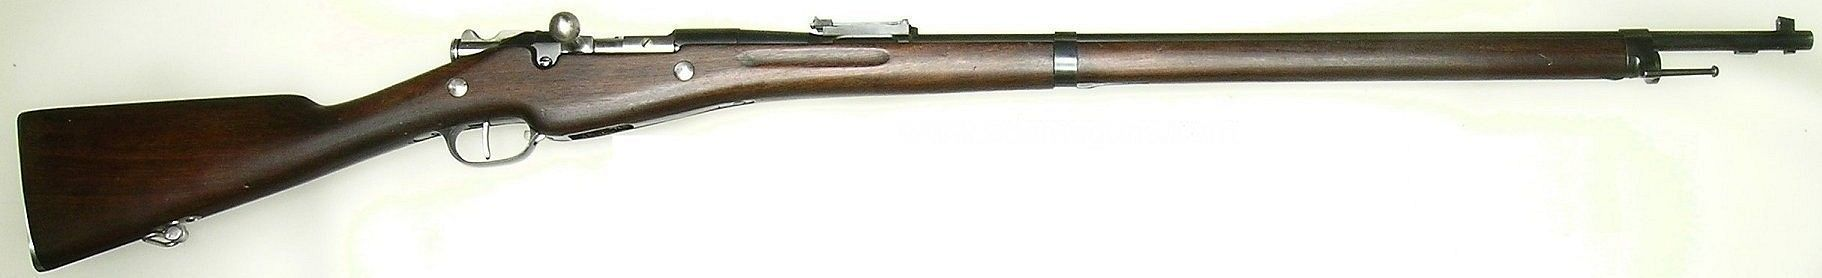 파일:external/upload.wikimedia.org/20060921092713%21Rifle_Berthier.jpg